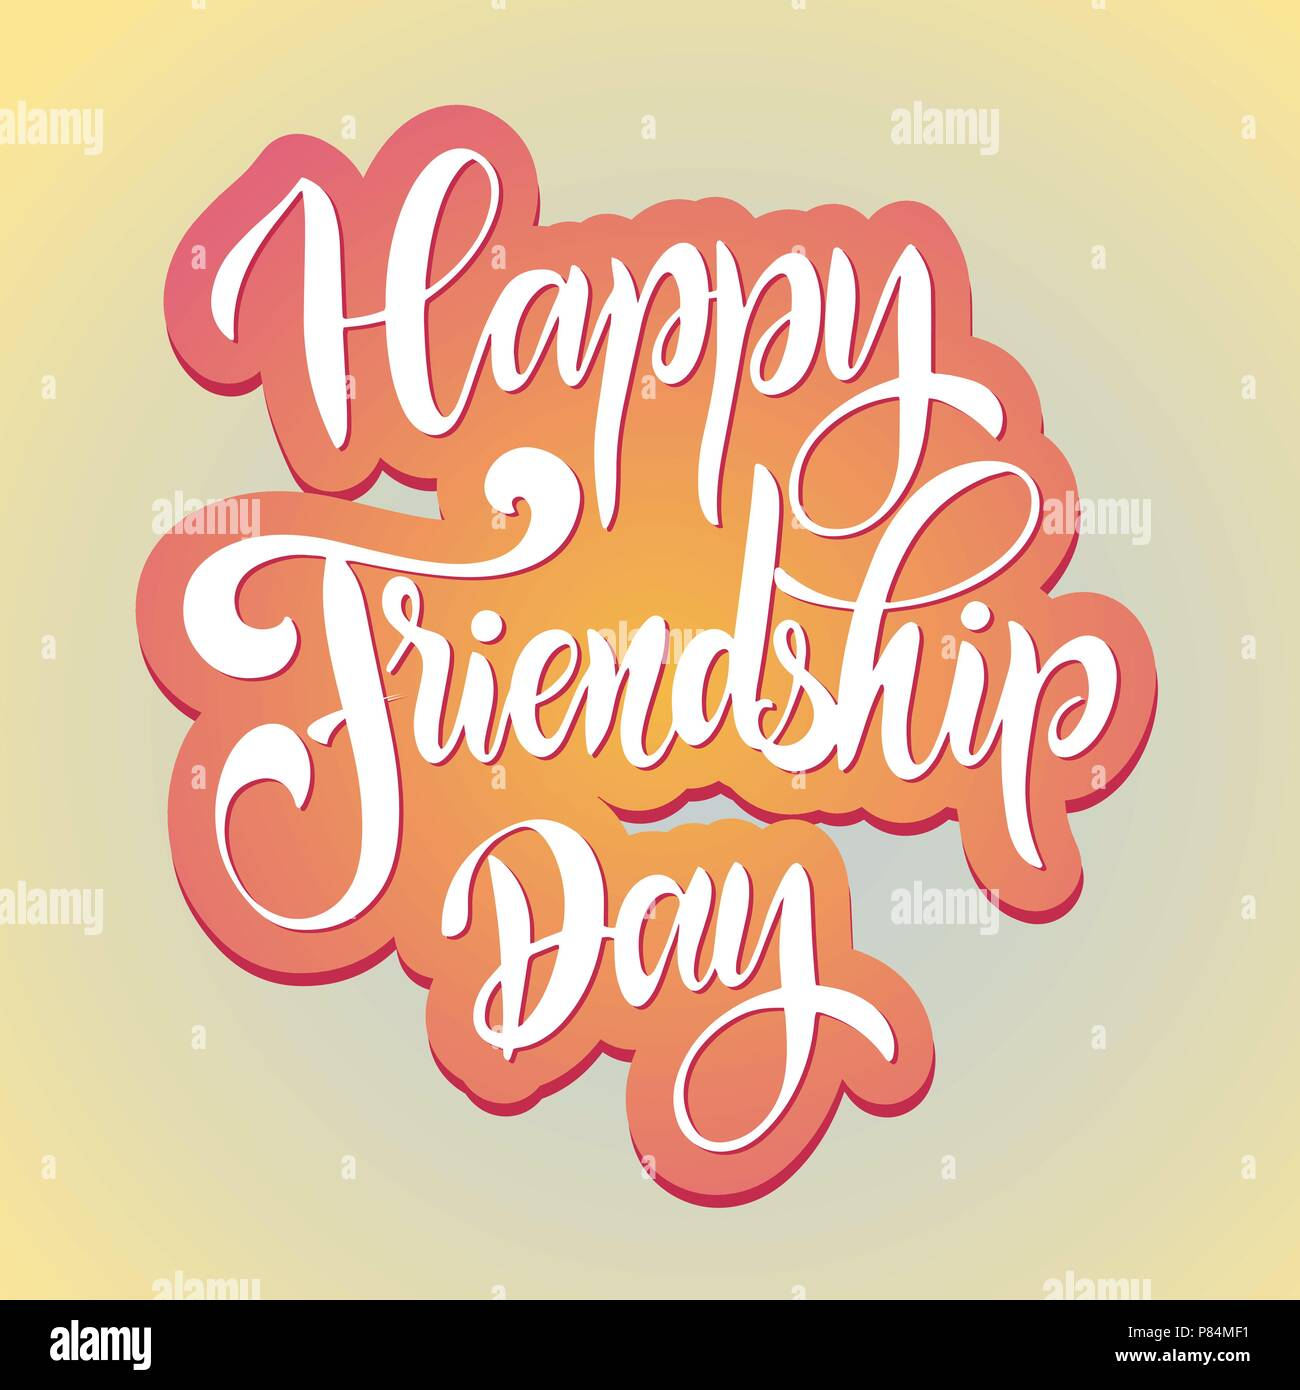 Friendship Day Hand Drawn Lettering Vector Elements For Invitations